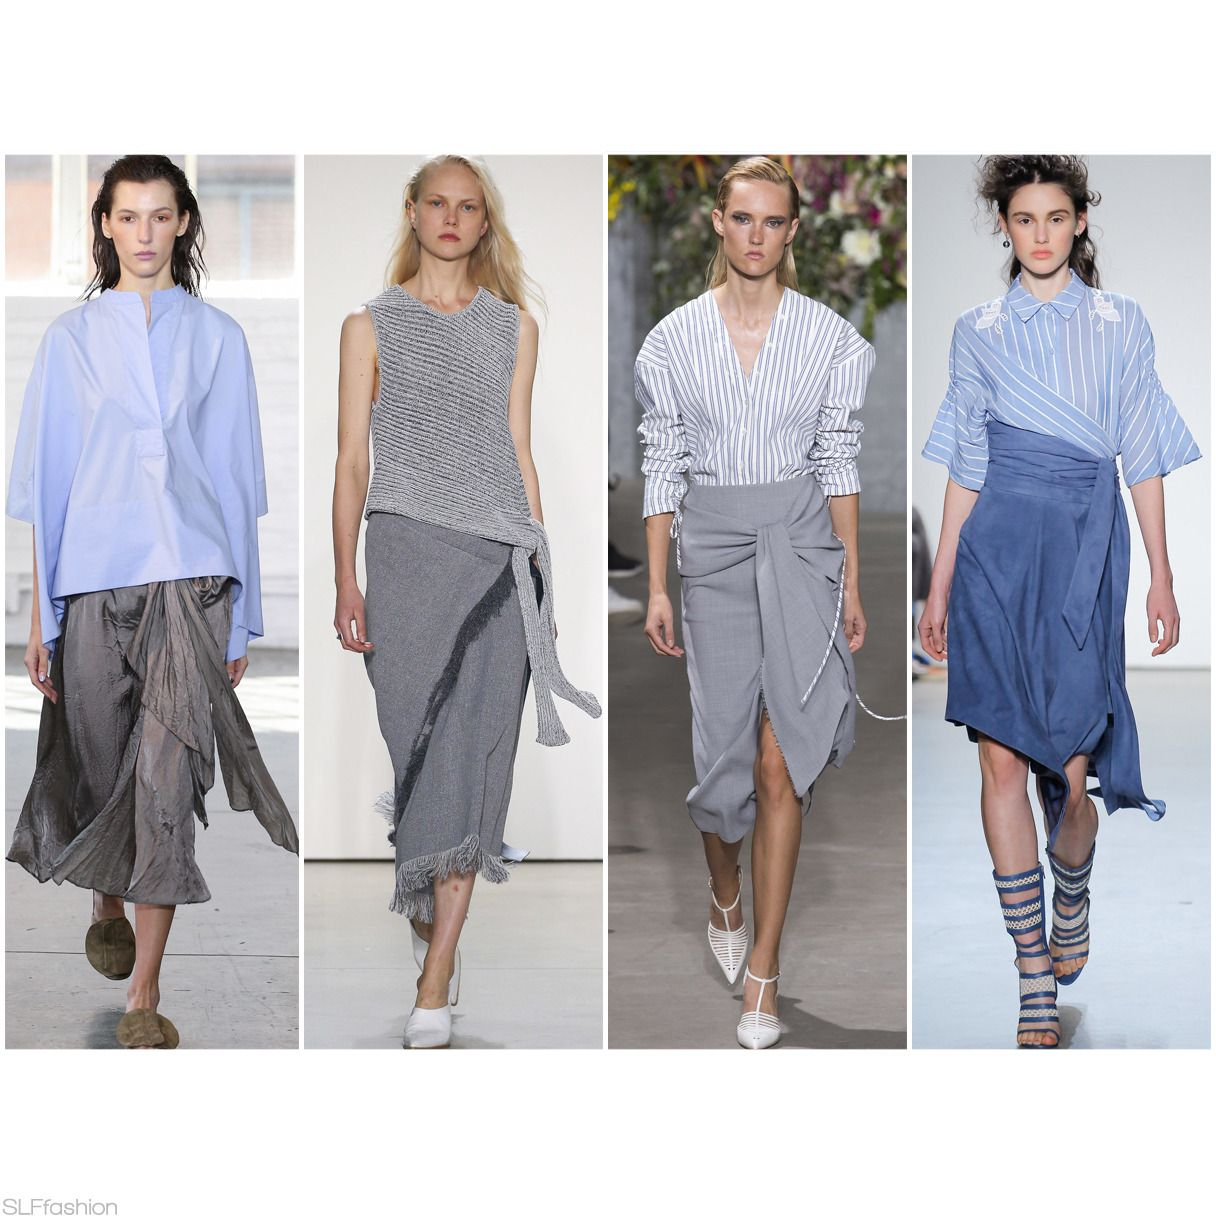 Skirt Trend at New York Fashion Week #SS18 : Casual wrap skirts. Creatures  of